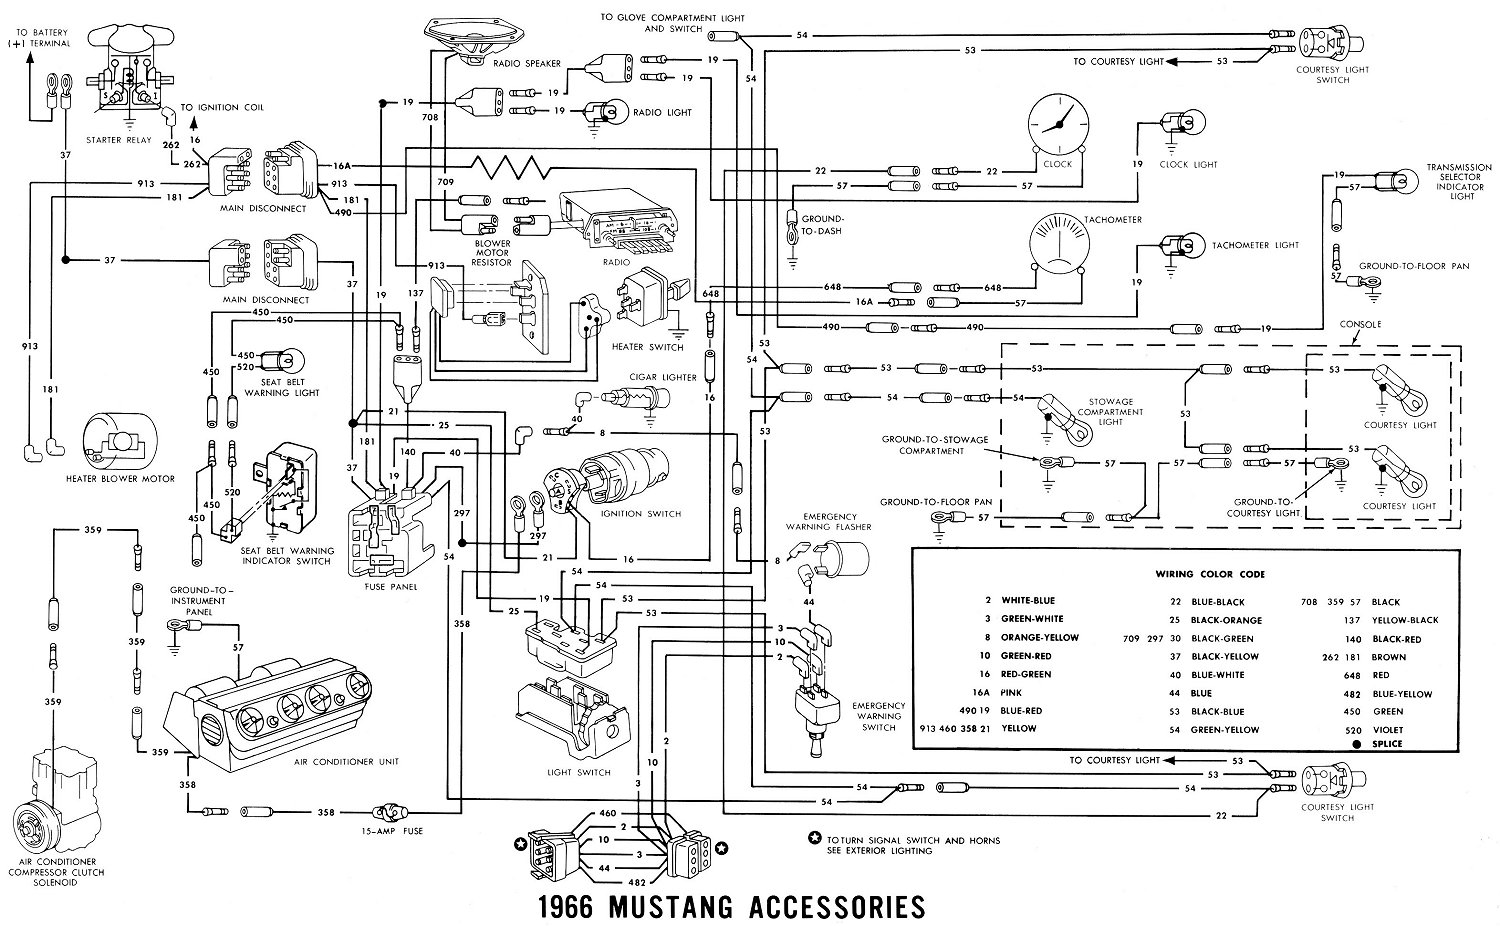 66acces1 1966 mustang wiring diagrams average joe restoration 1966 mustang fuse box diagram at bayanpartner.co